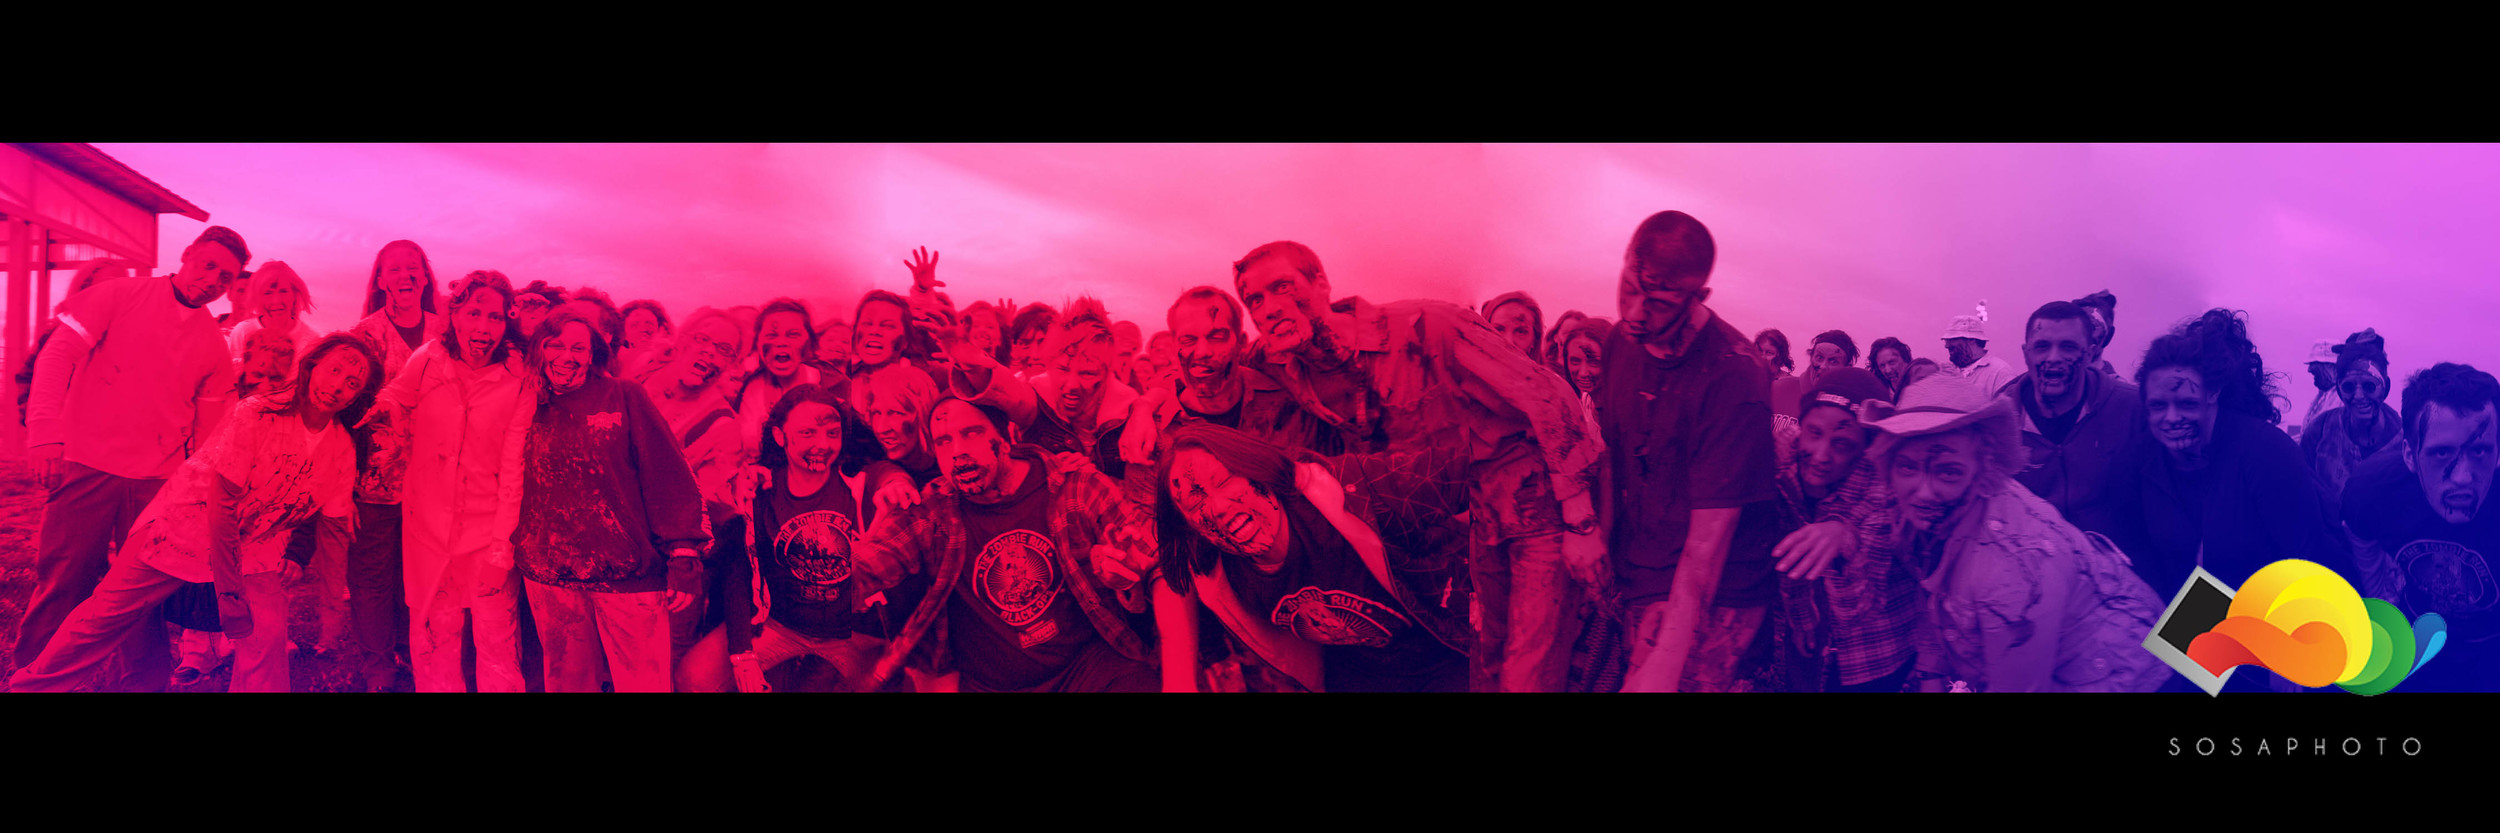 "The Resurrection has begun! Photographed "" The Zombie Run "" group of infected individuals before they spread!"